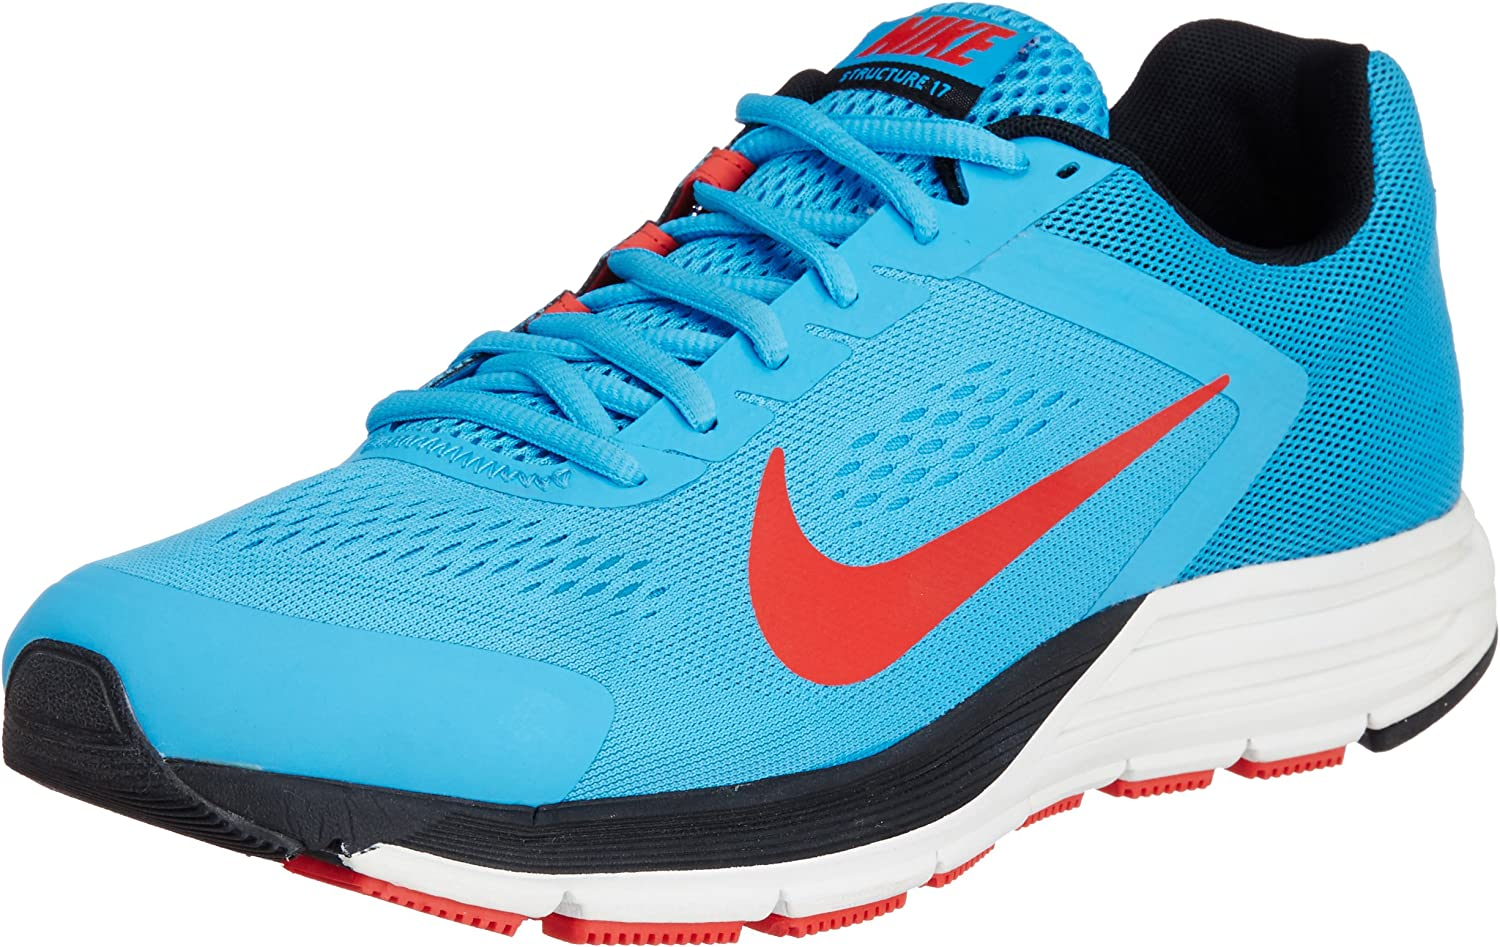 Refinar dinero Consentimiento  Nike Zoom Structure+ 17 Men's Running Shoes, Blue/Black, UK7: Amazon.co.uk:  Shoes & Bags